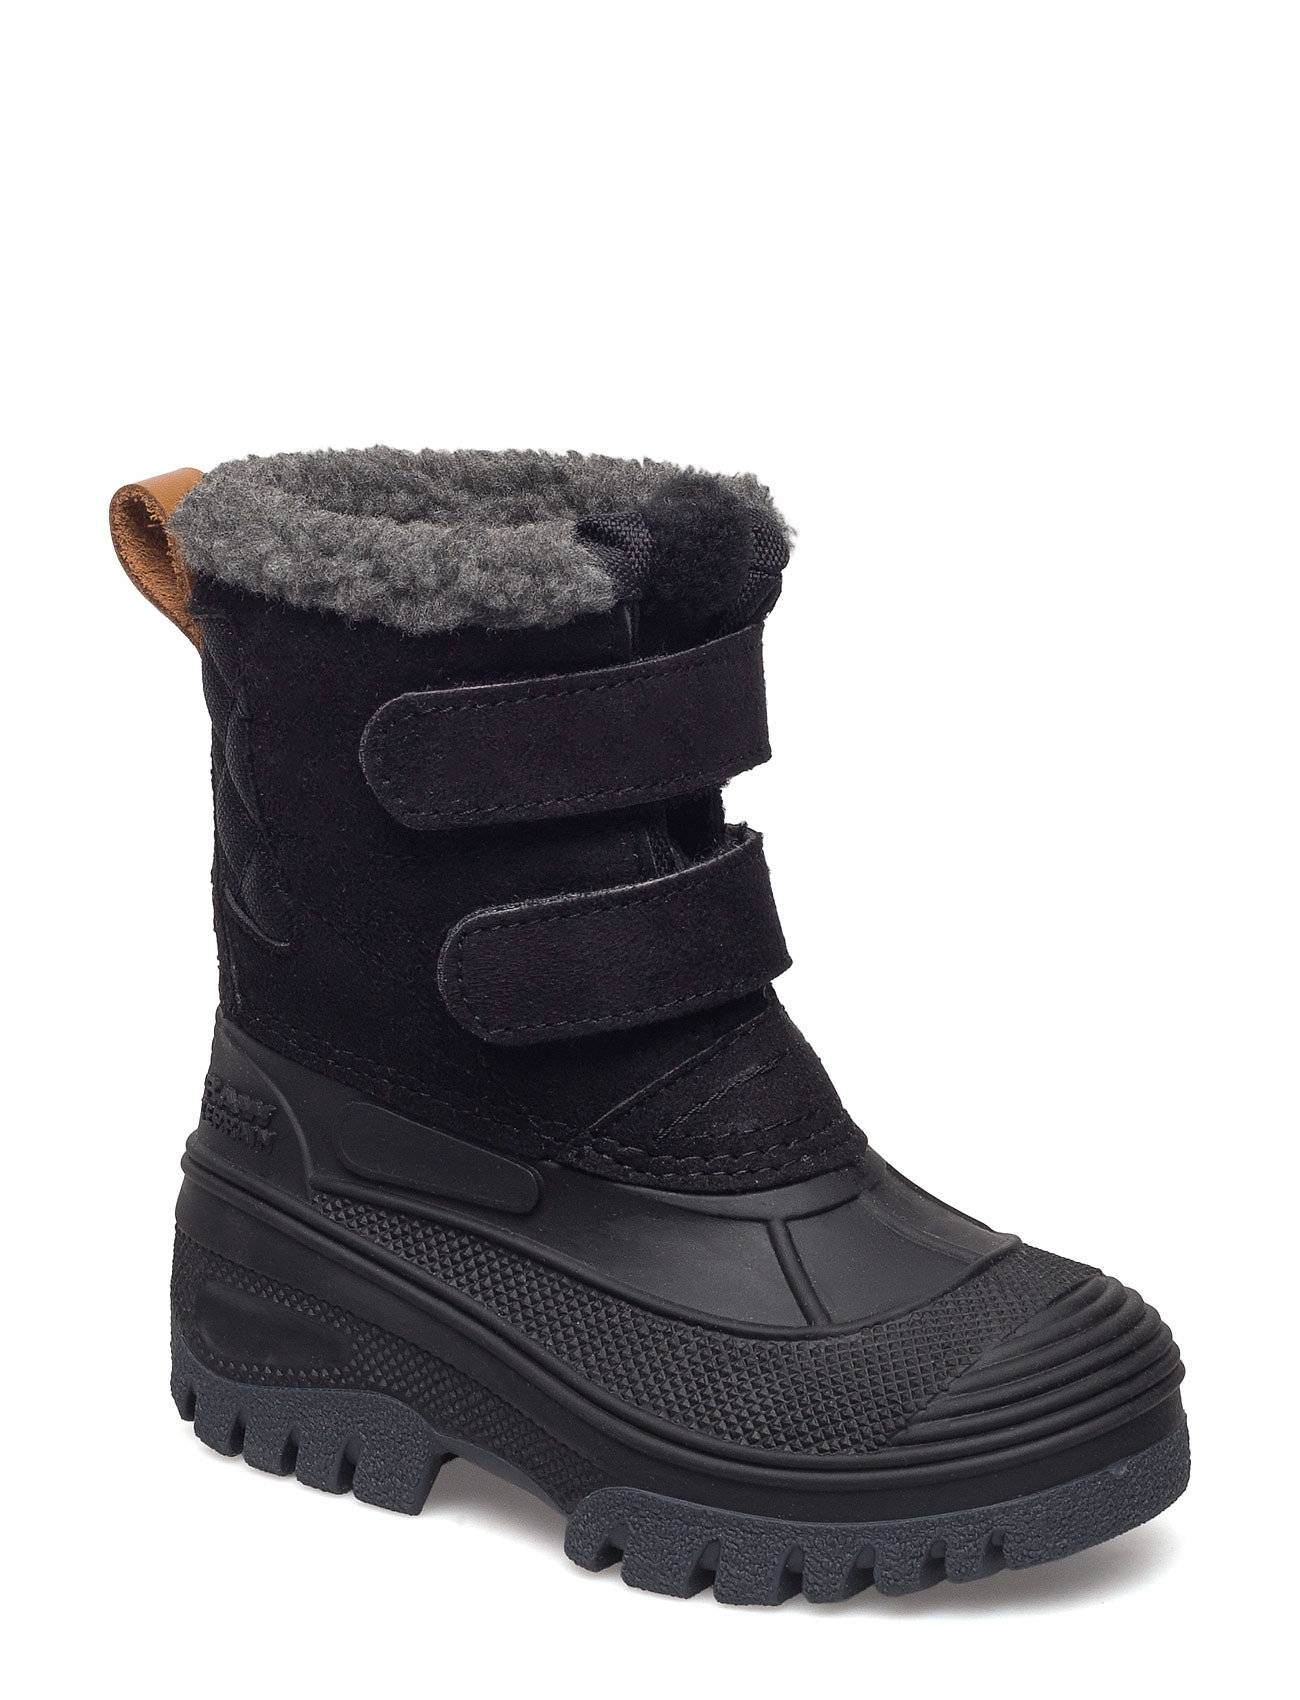 Move by Melton Unisex - Snowboot With Velcro